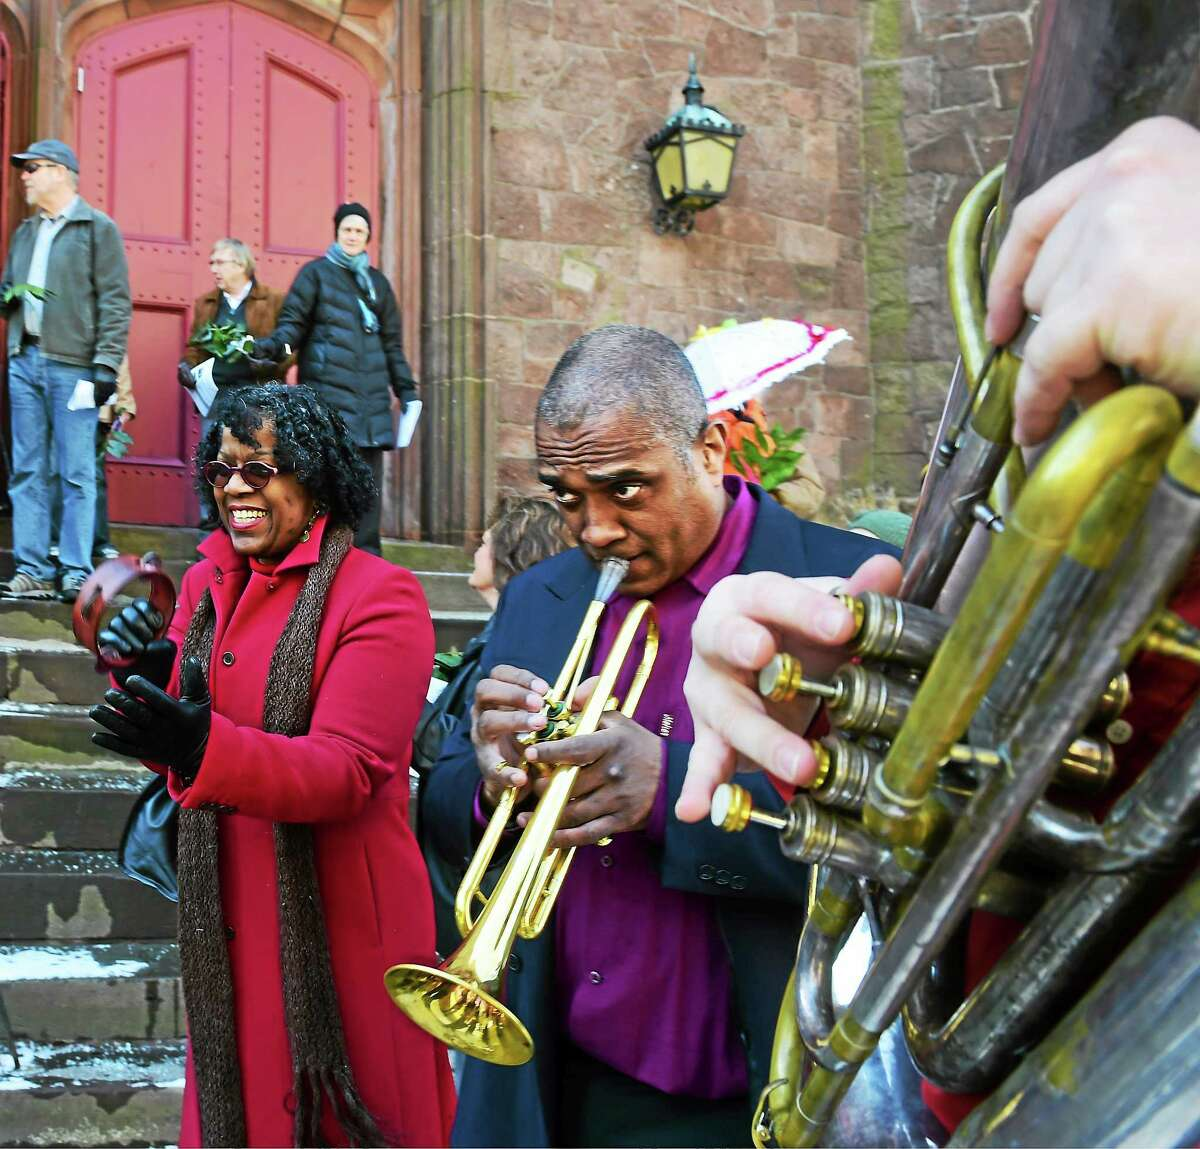 """Aleta Straton of New Haven play the tambourine and sings, left, as The Episcopal Church of St. Paul & St. James in New Haven holds a Palm Sunday New Orleans """"second line"""" jazz style procession, its annual Parasols & Palms Parade, Sunday from the church on Chapel Street, around Olive Street to Wooster Street and back to the church."""